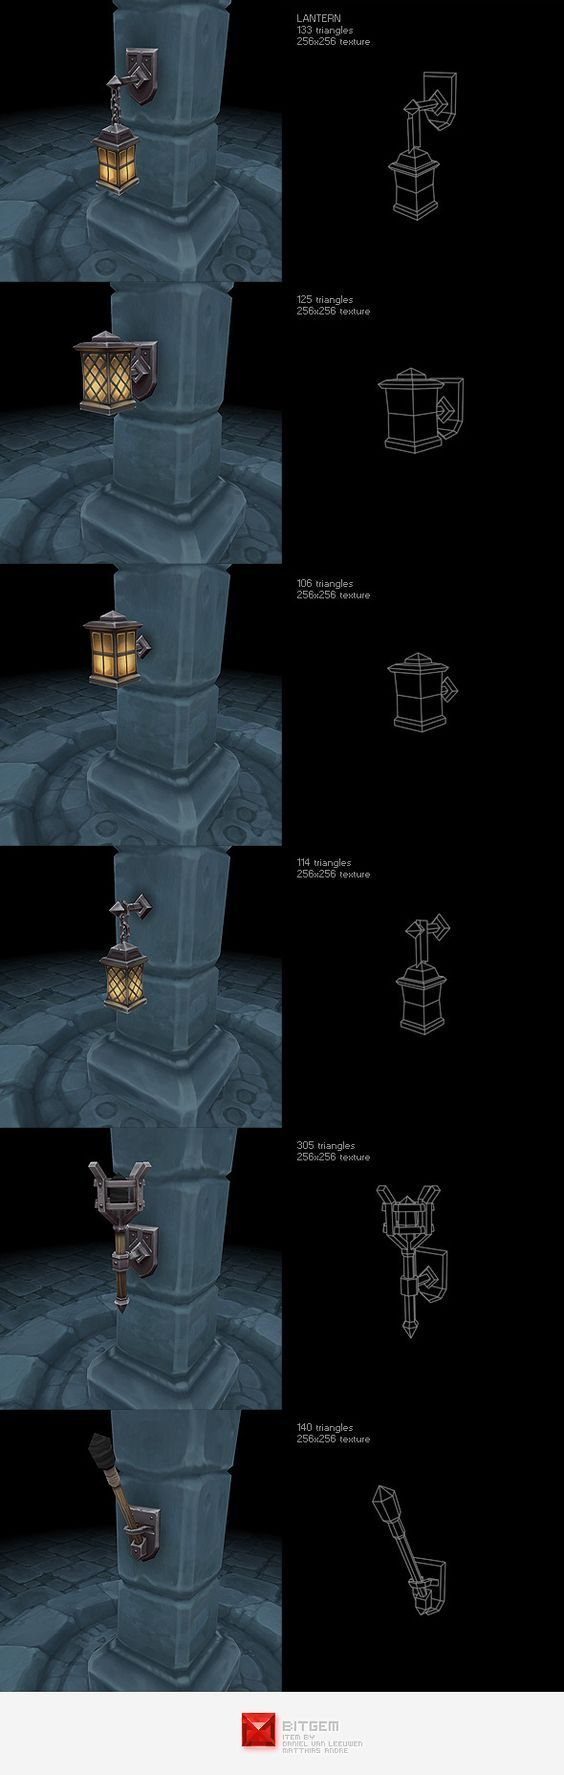 Low Poly Lantern Set - 3DOcean Item for Sale: